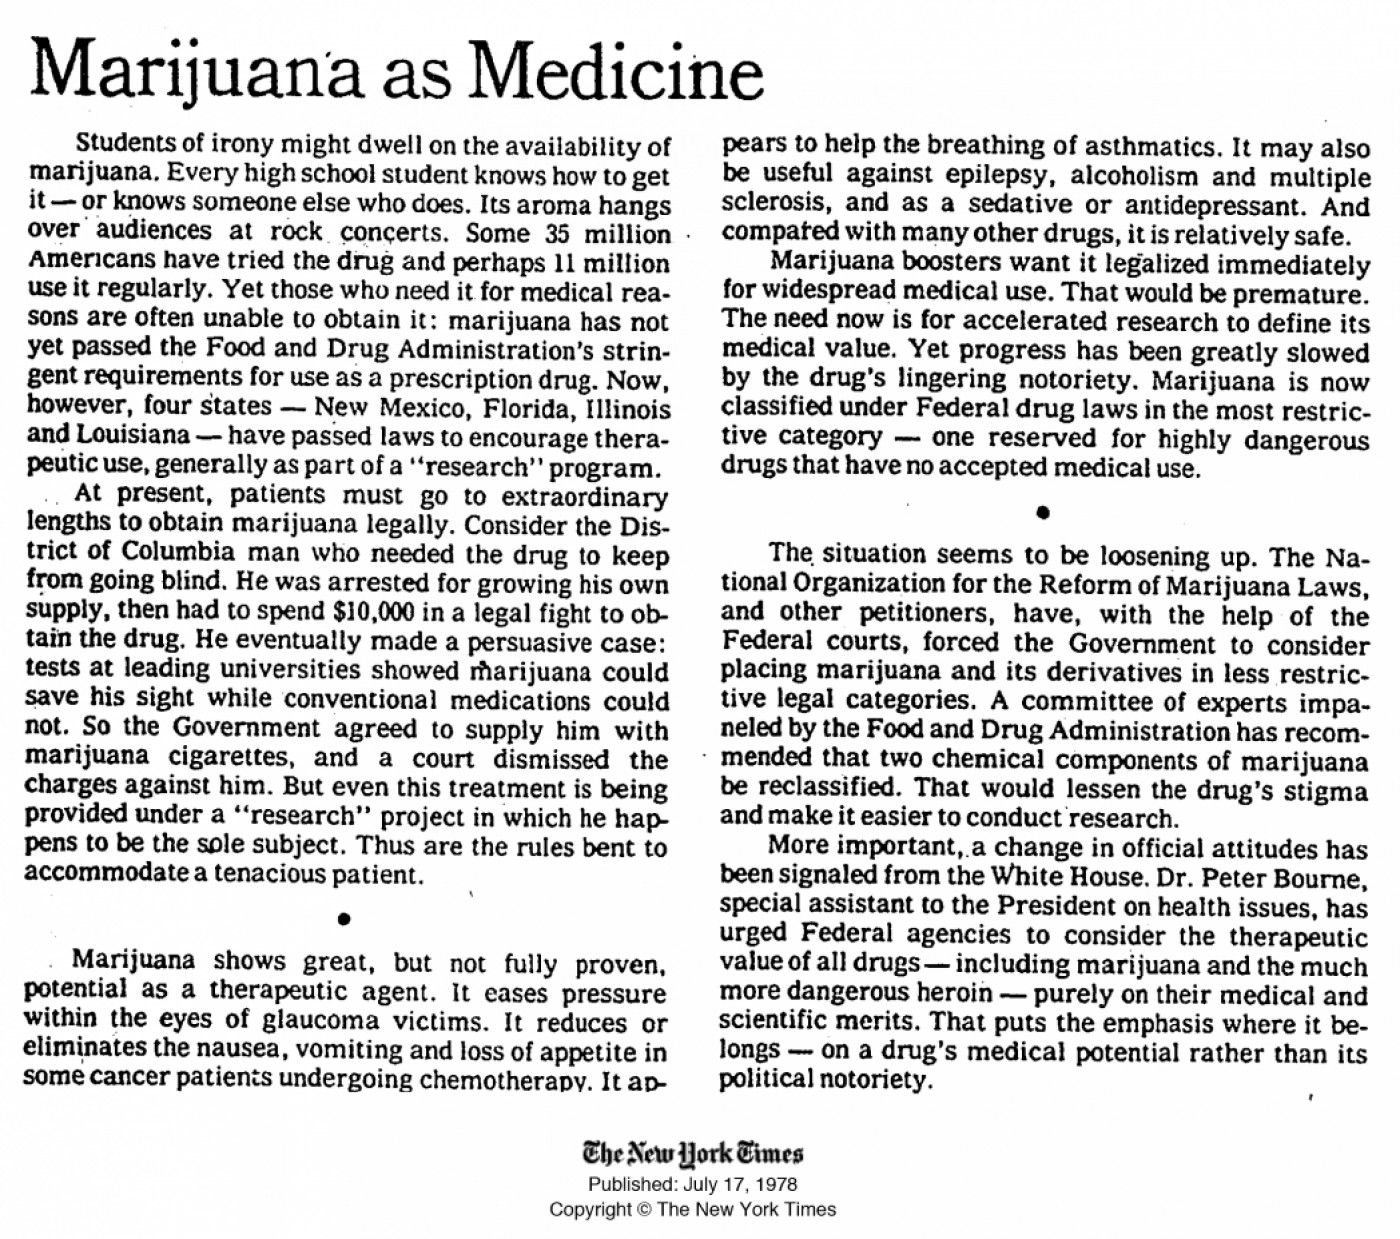 001 New York Essays Marijuana Legalization Persuasive Essay Legalize High Time Medicine July College Yorker Help Times 1048x928 Breathtaking Topics Titles Outline 1400